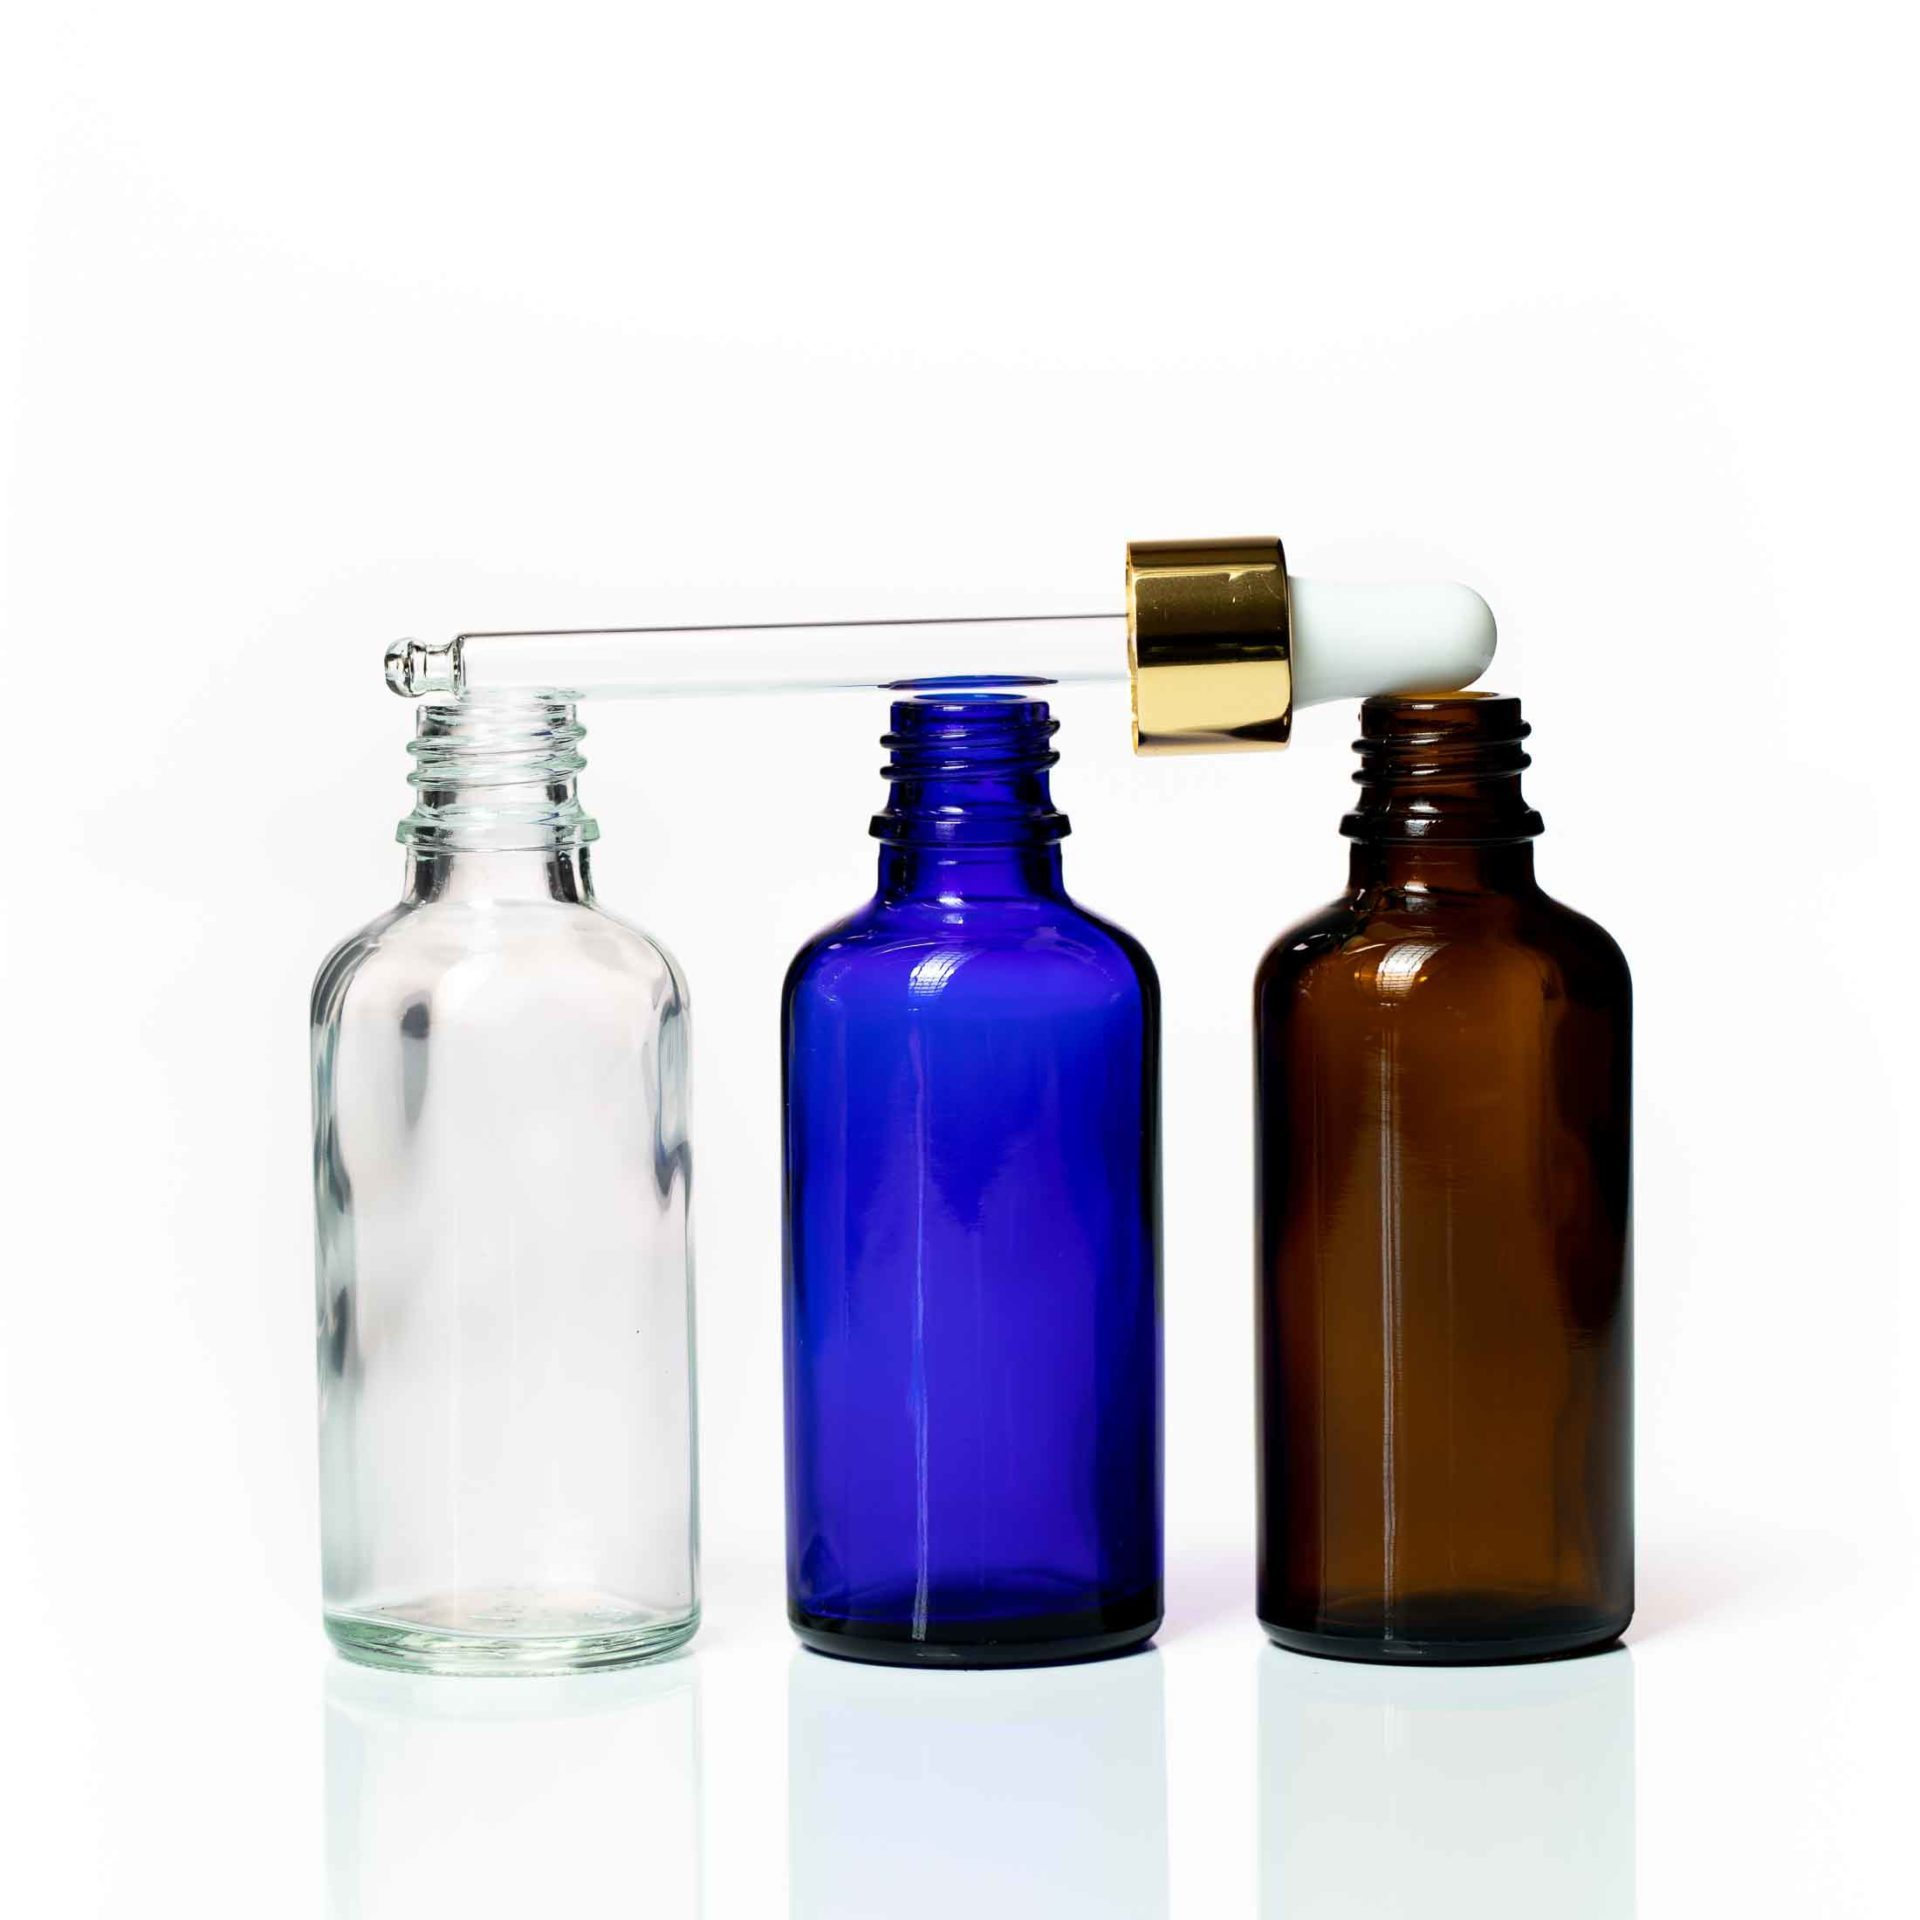 See us for all of your aromatherapy, homeopathy and naturapathy supplies.  www.WholesaleAromaSupplies.co.nz